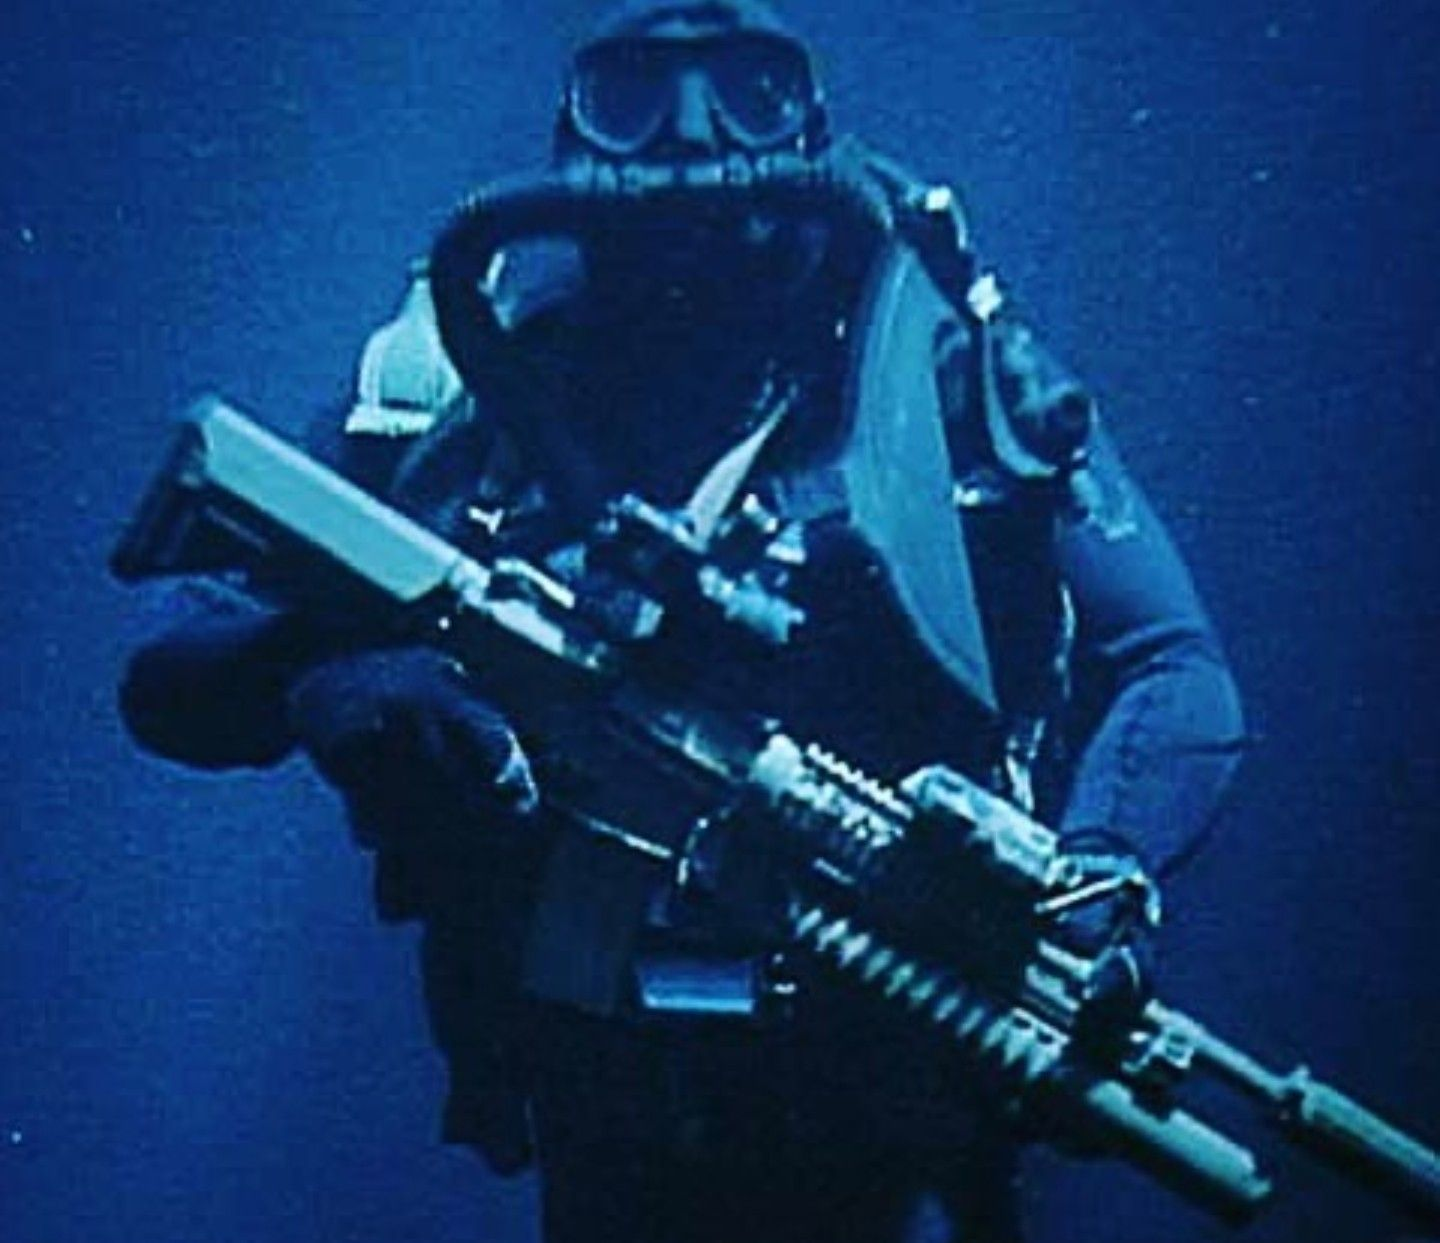 Pin by cameron on come and take them navy seals naval